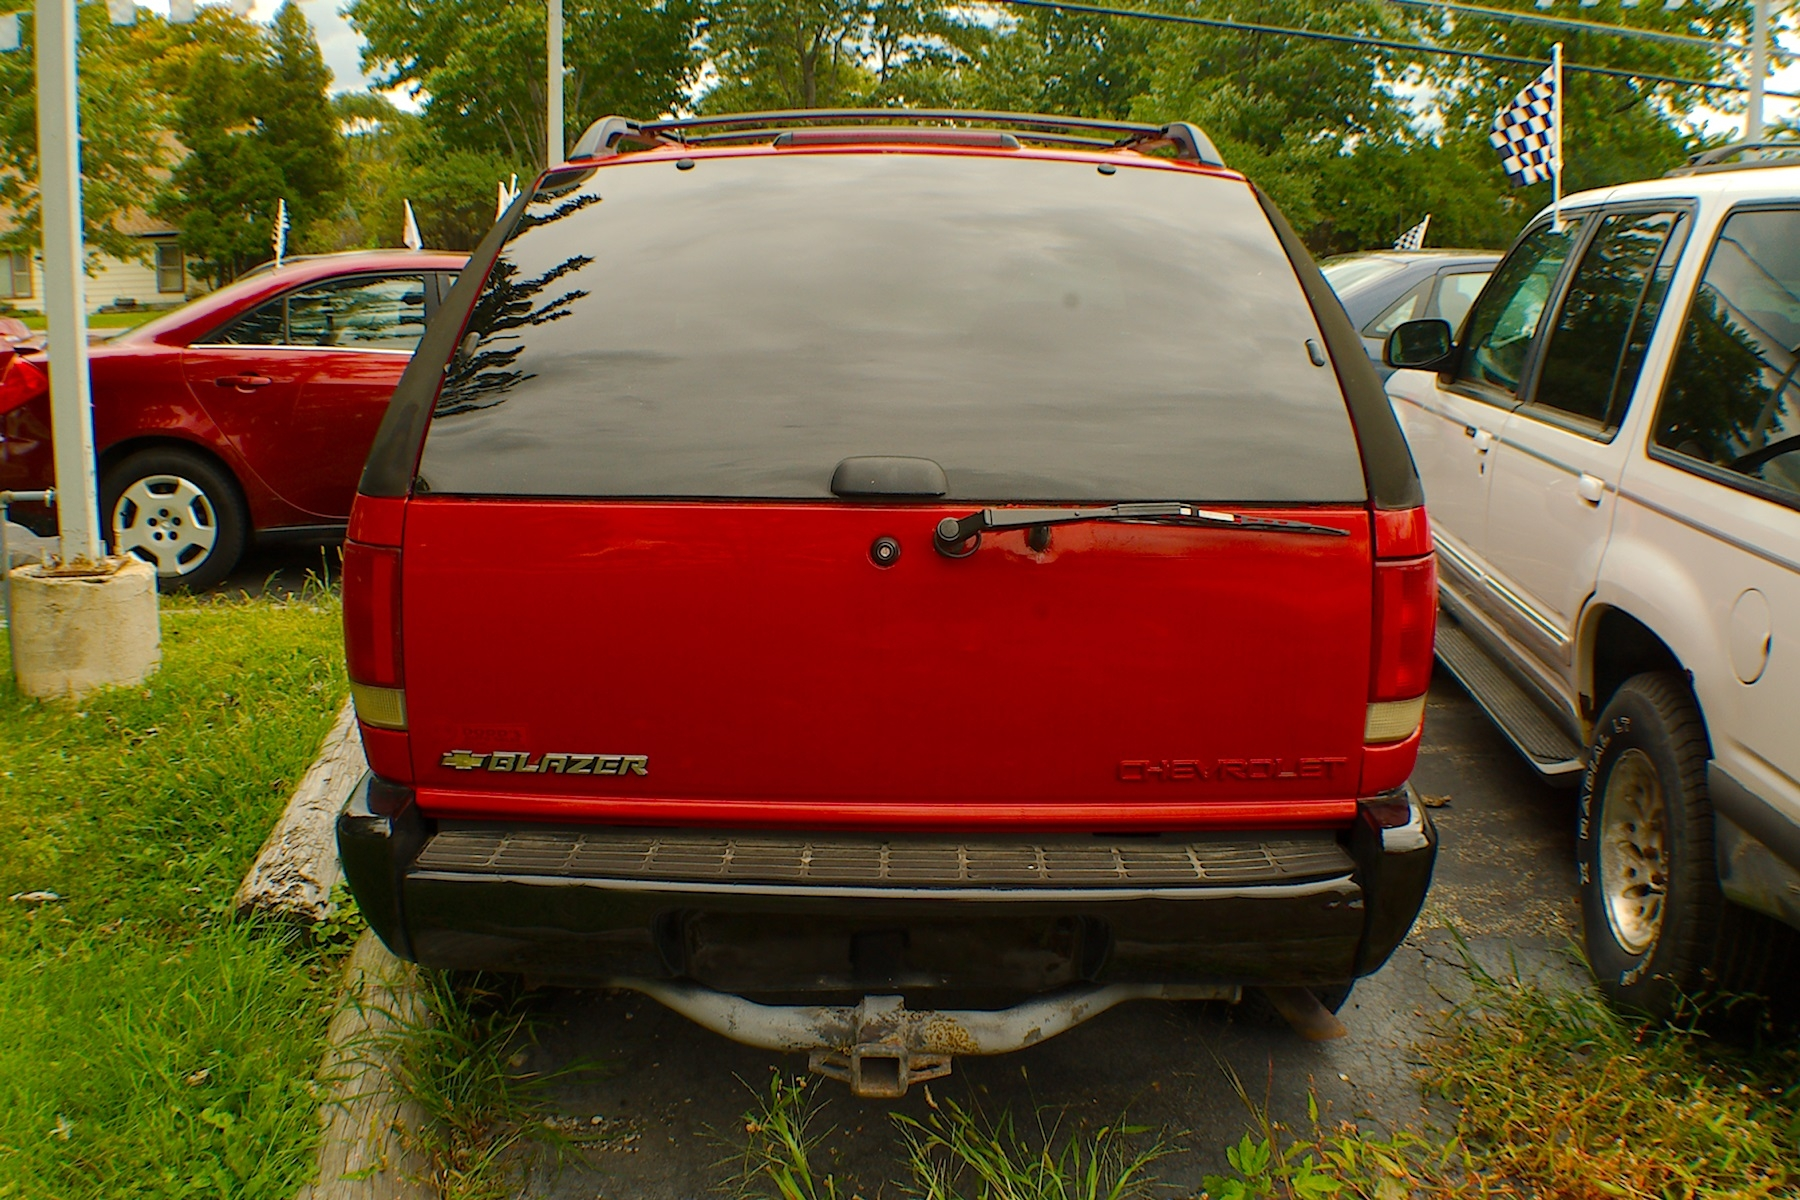 1996 Chevrolet Blazer LS 2Dr Red 4x4 SUV Sale Fox River Grove Grayslake Volo Waucanda